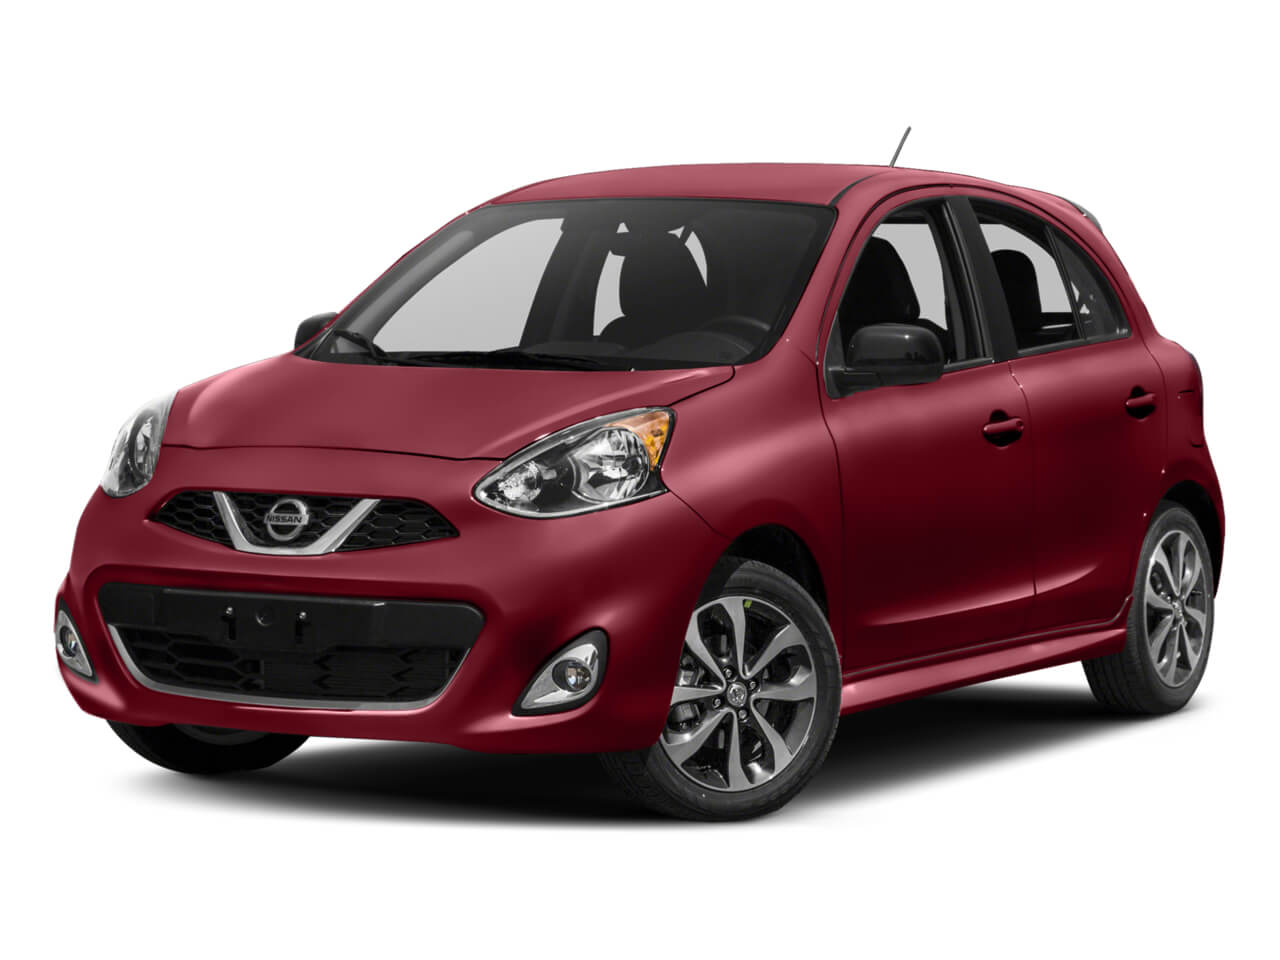 red Nissan Micra economy car for rent